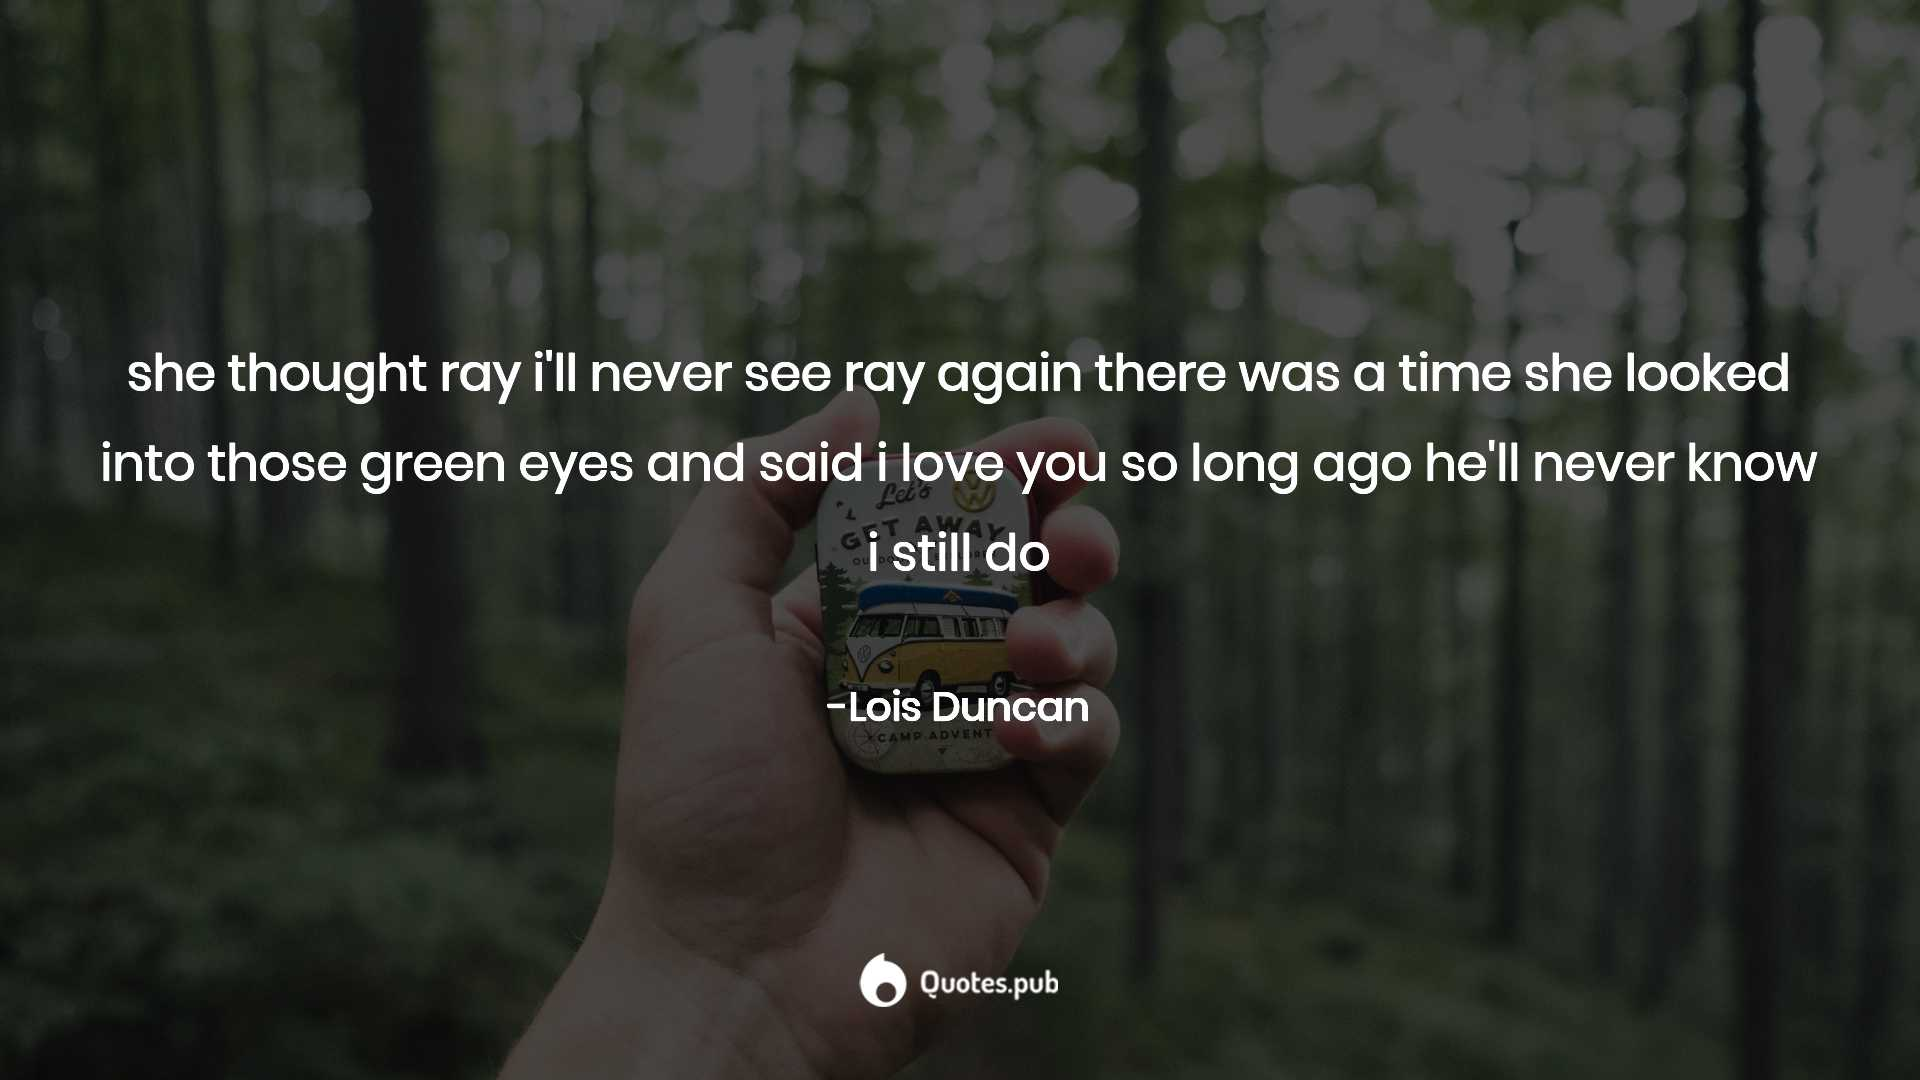 She Thought Ray Ill Never See Ray Again Lois Duncan Quotespub